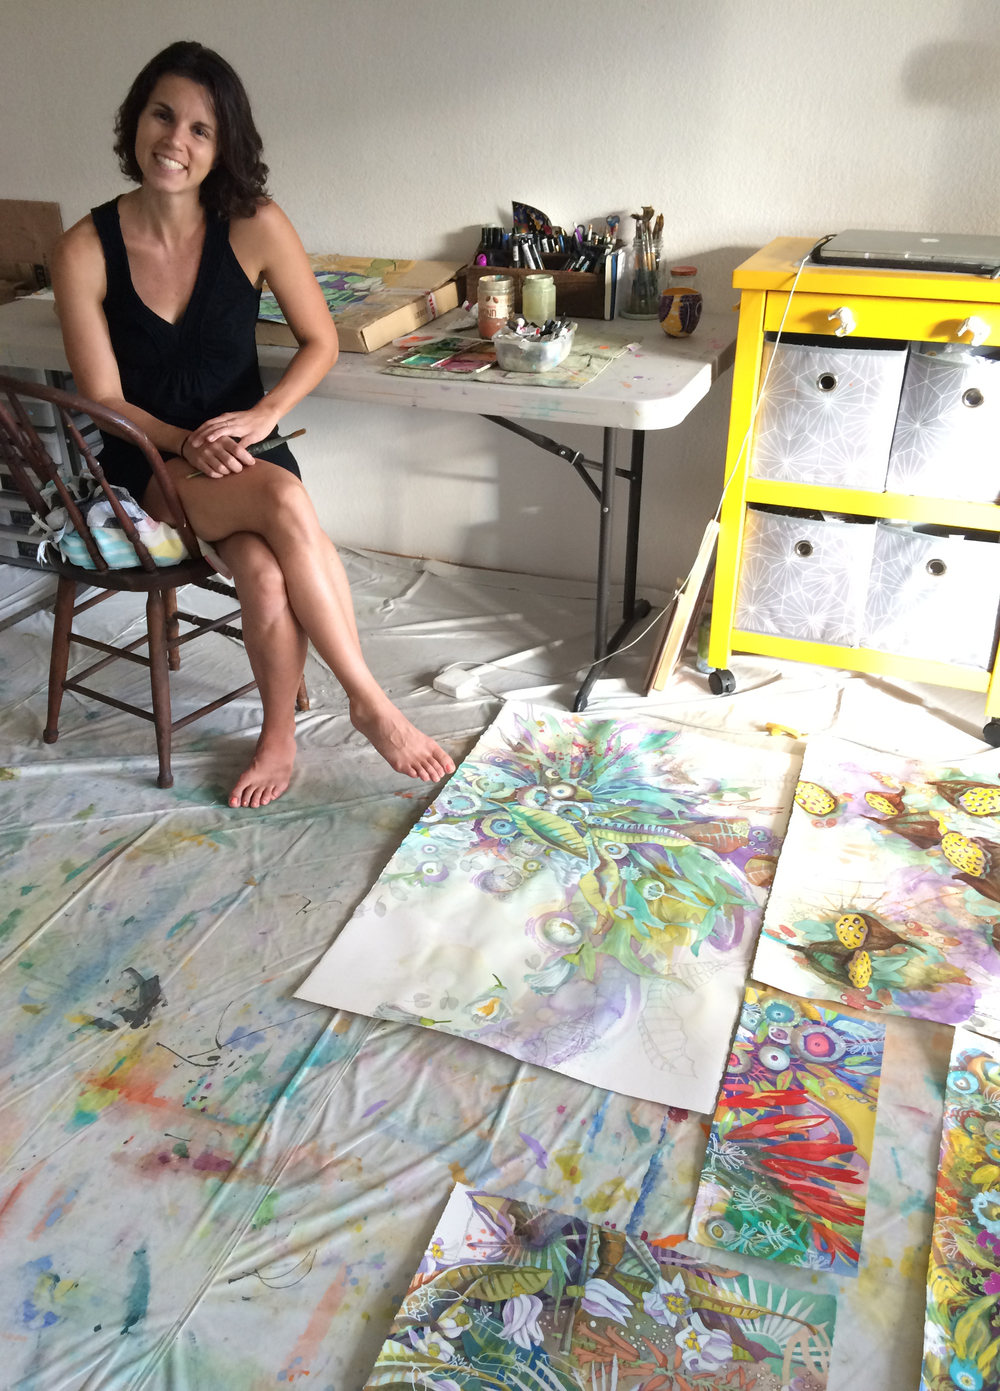 my studio is simple. I find I can create really anywhere, it comes from within, no from without.